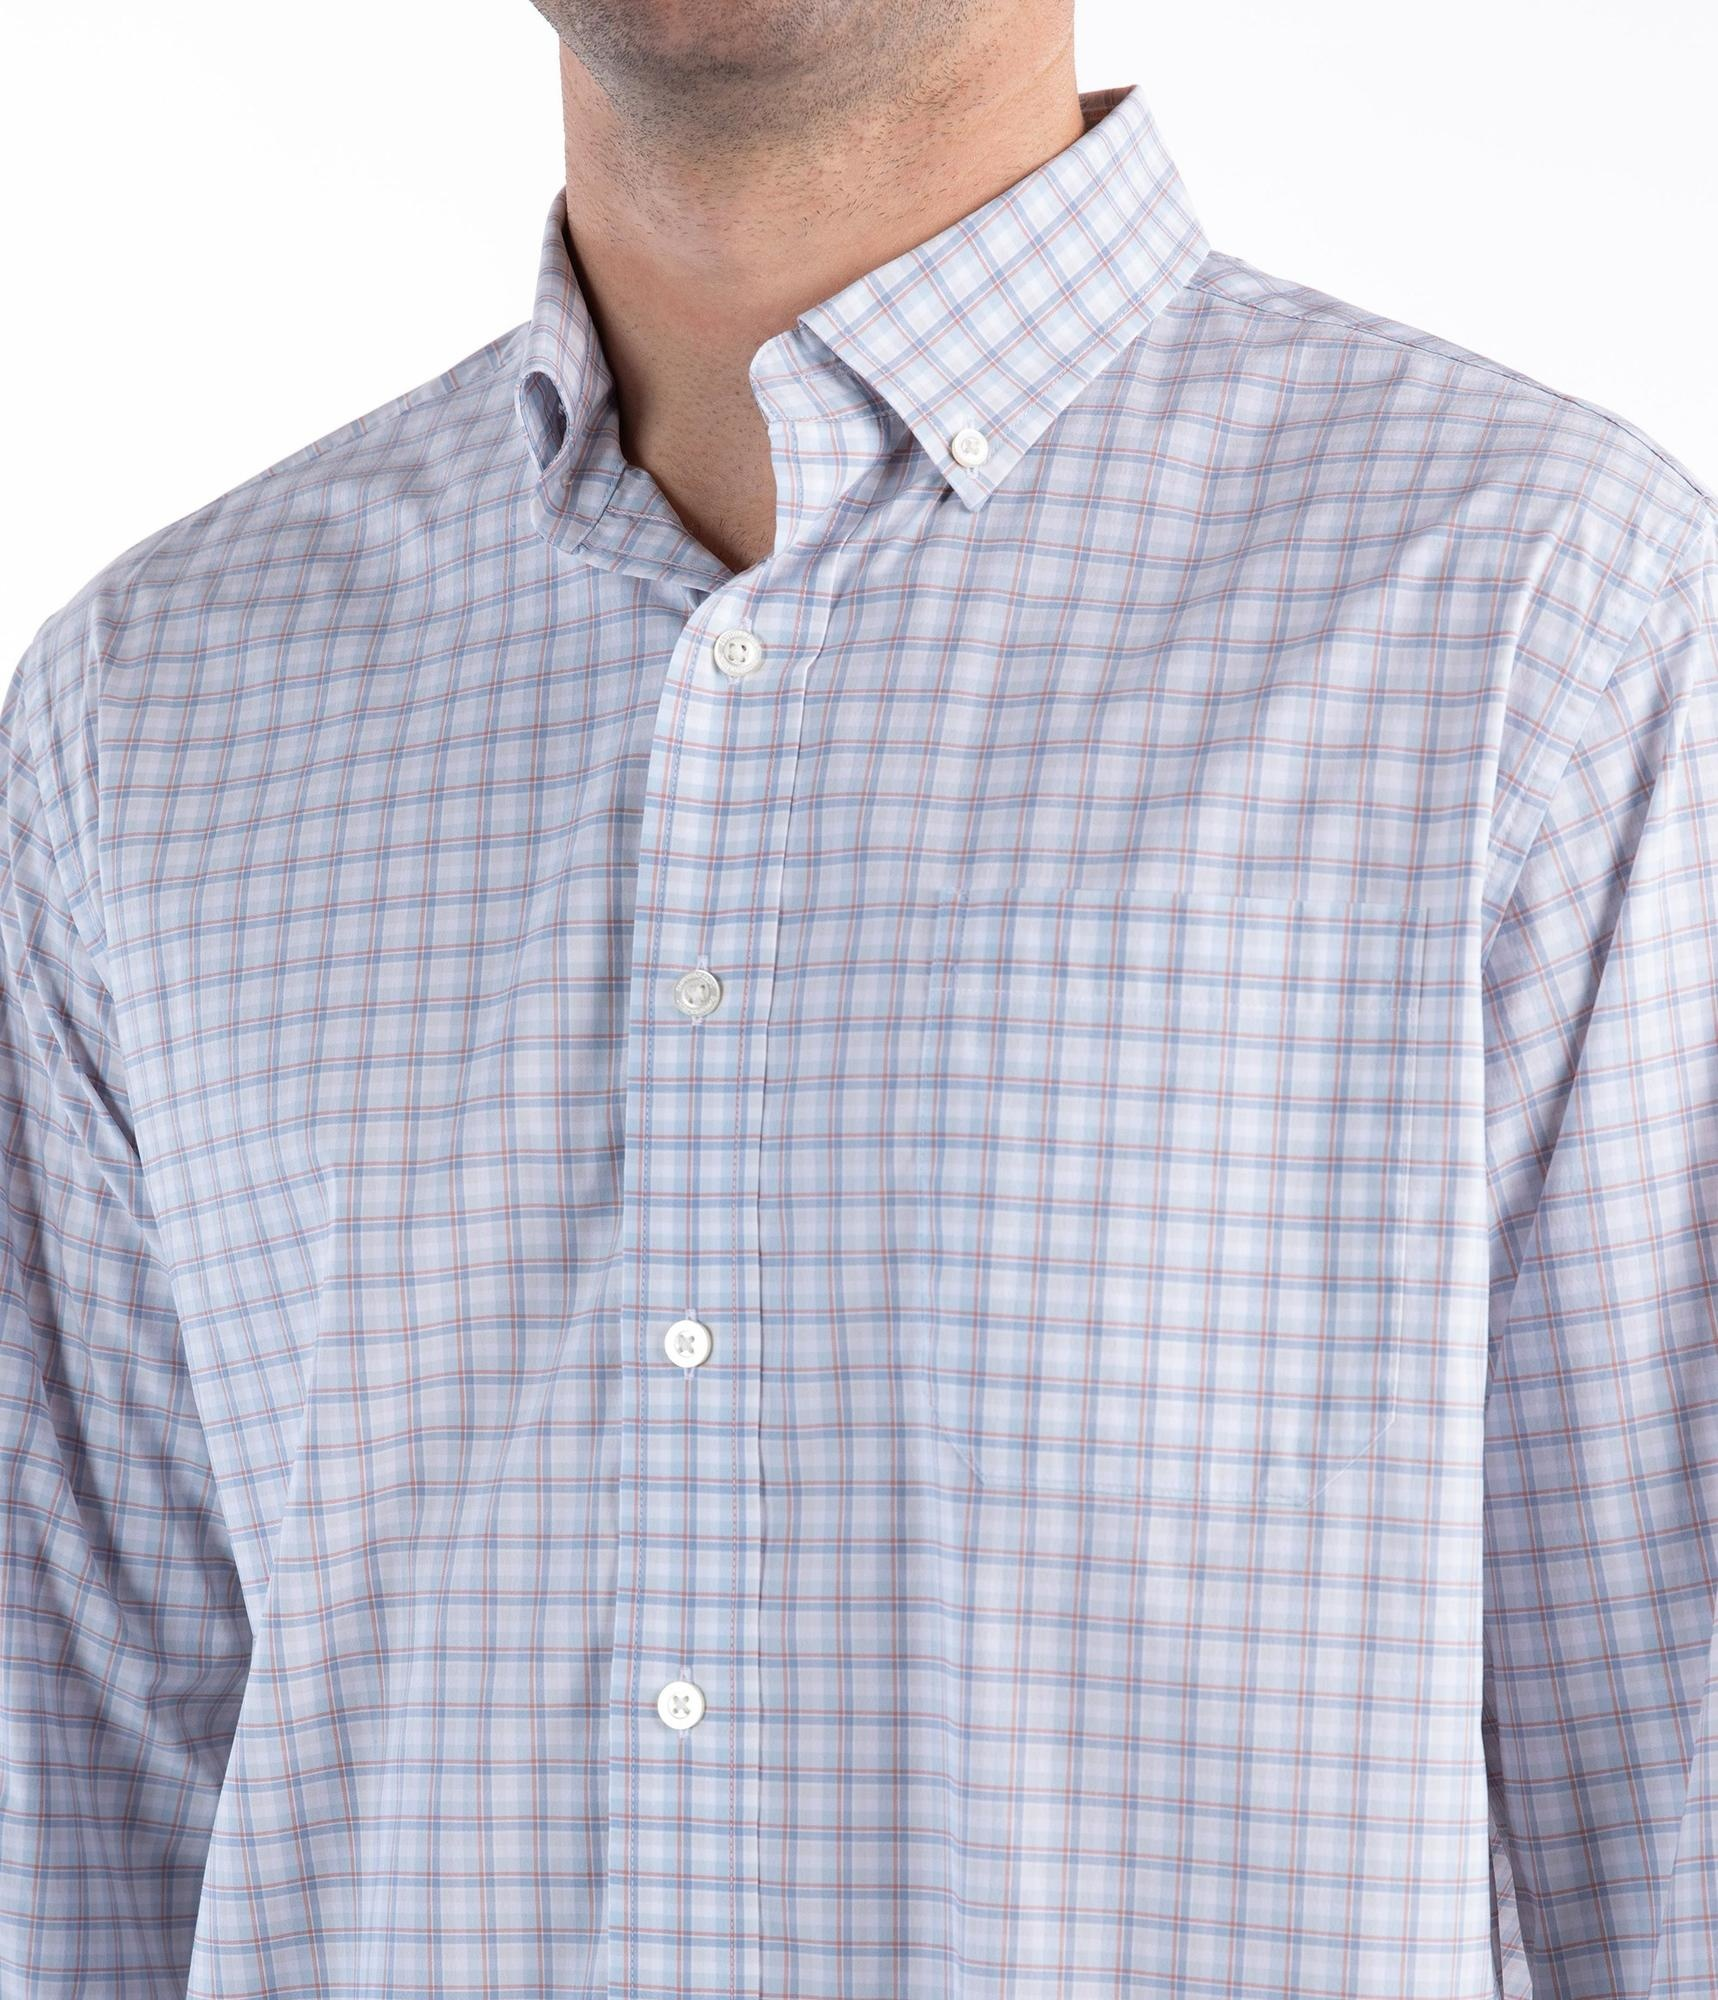 Southern Shirt One Island Plaid Dress Shirt